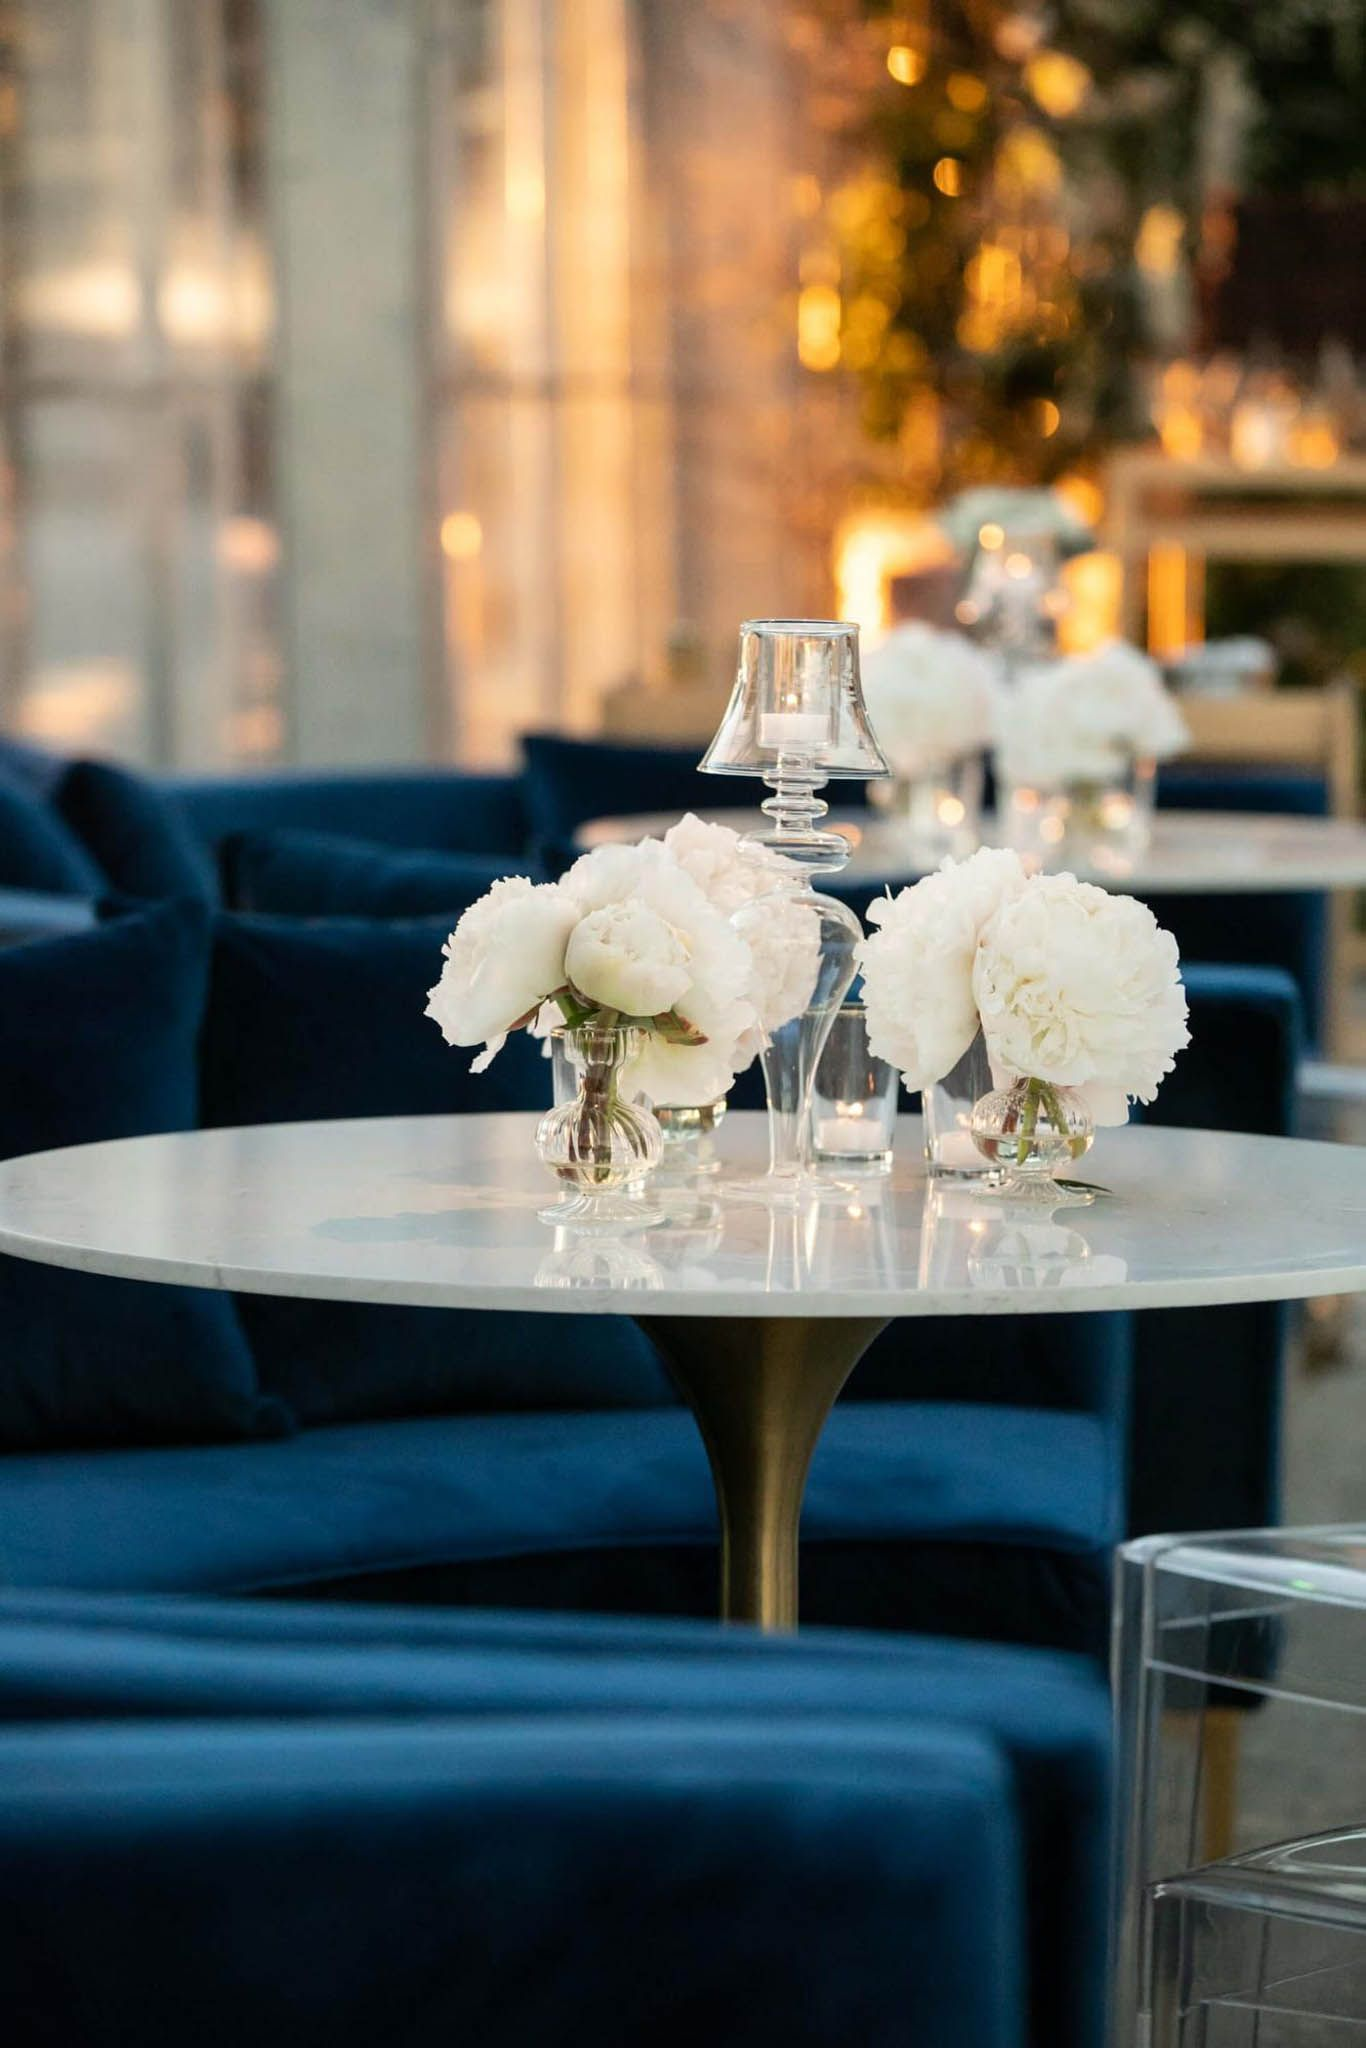 If You Think Neutral Colors Are Boring You Might Want To Keep Scrolling This Dreamy In 2020 Luxury Weddings Reception Modern Wedding Decor Floral Wedding Decorations